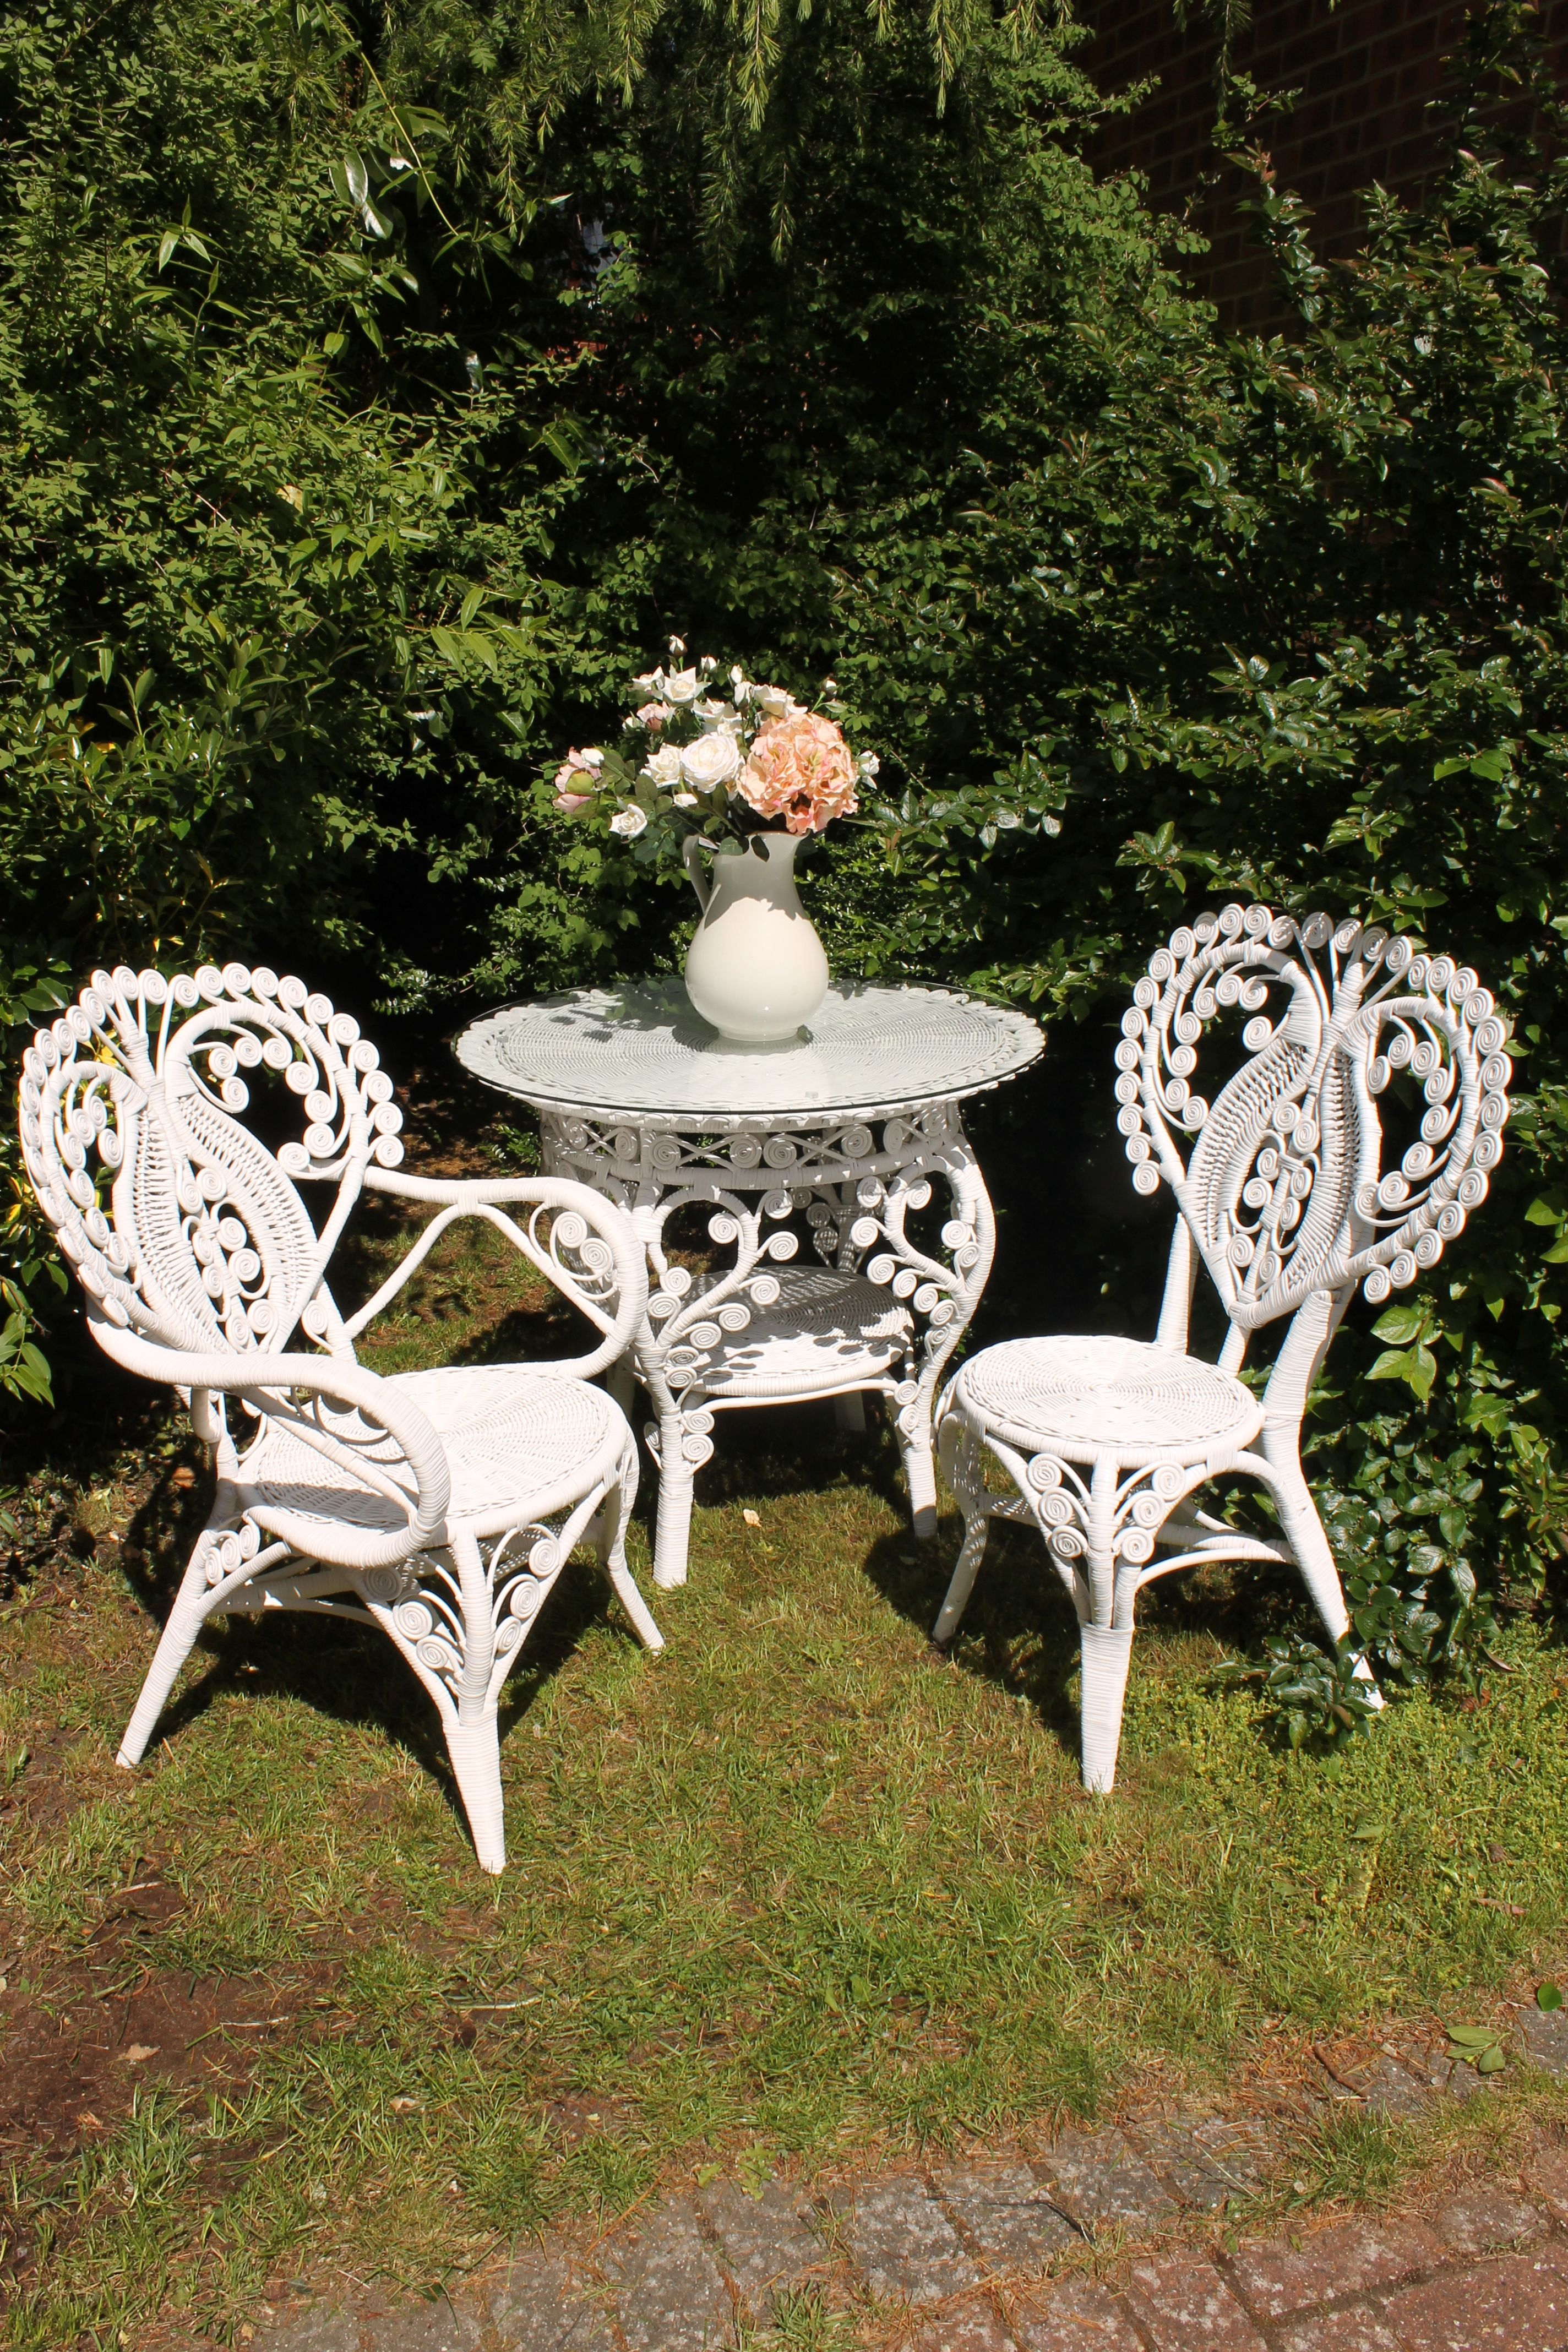 White Garden Furniture Uk Beautiful peacock ornate white rattan table and chair garden set beautiful peacock ornate white rattan table and chair garden setavailable in the uk curlycane workwithnaturefo